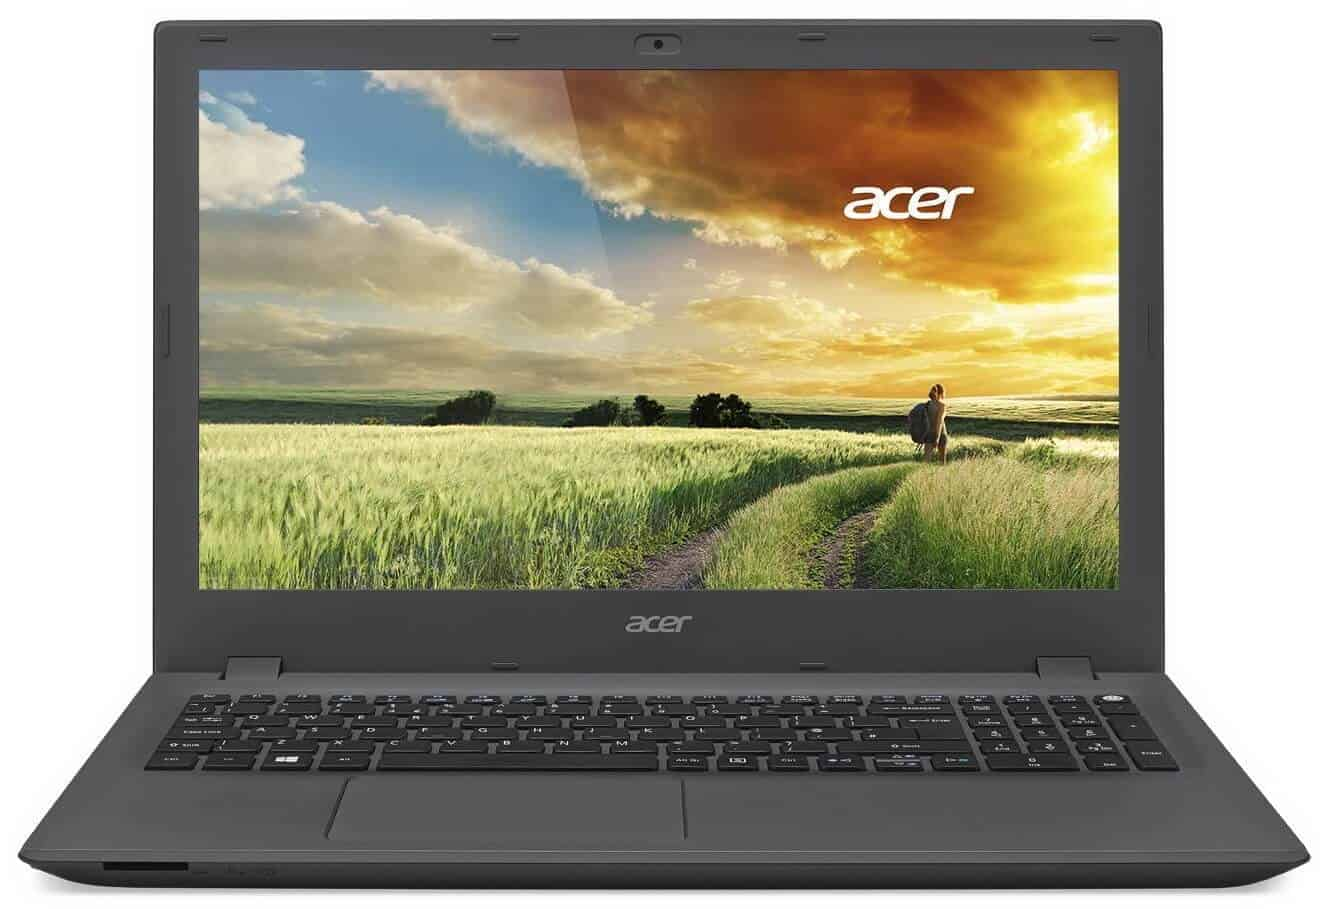 Acer Aspire E5-573-37RC - laptop accesibil de 15,6 inch cu performanta decenta!